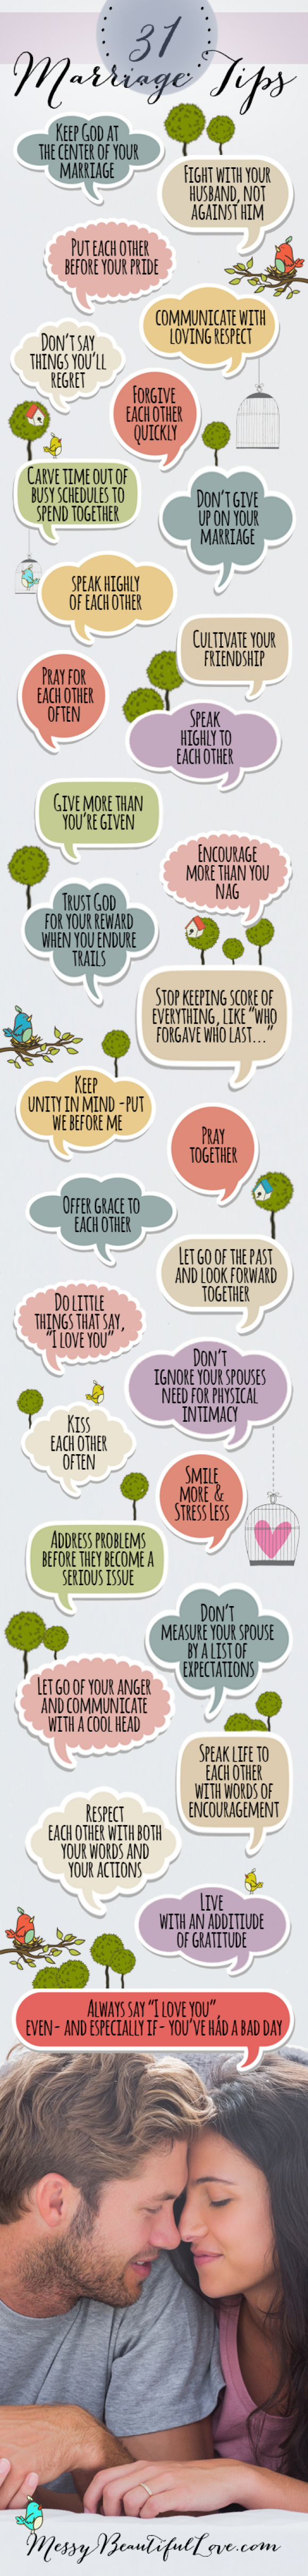 31 Marriage Tips! Maybe I can print out & put in a jar & we read one every day! #relationship